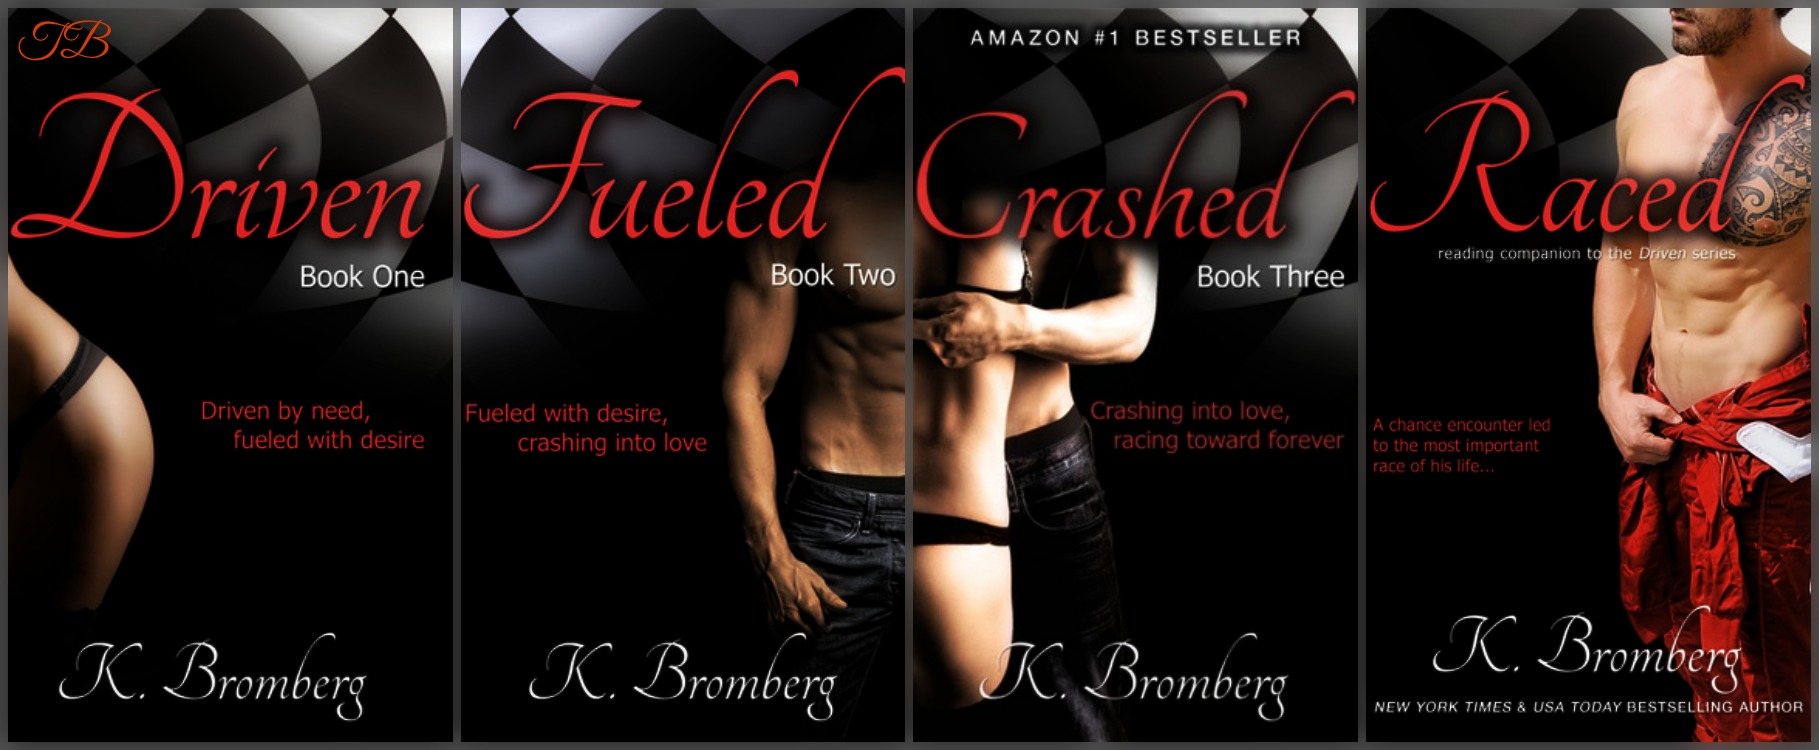 Crashed (Audiobook) by K. Bromberg